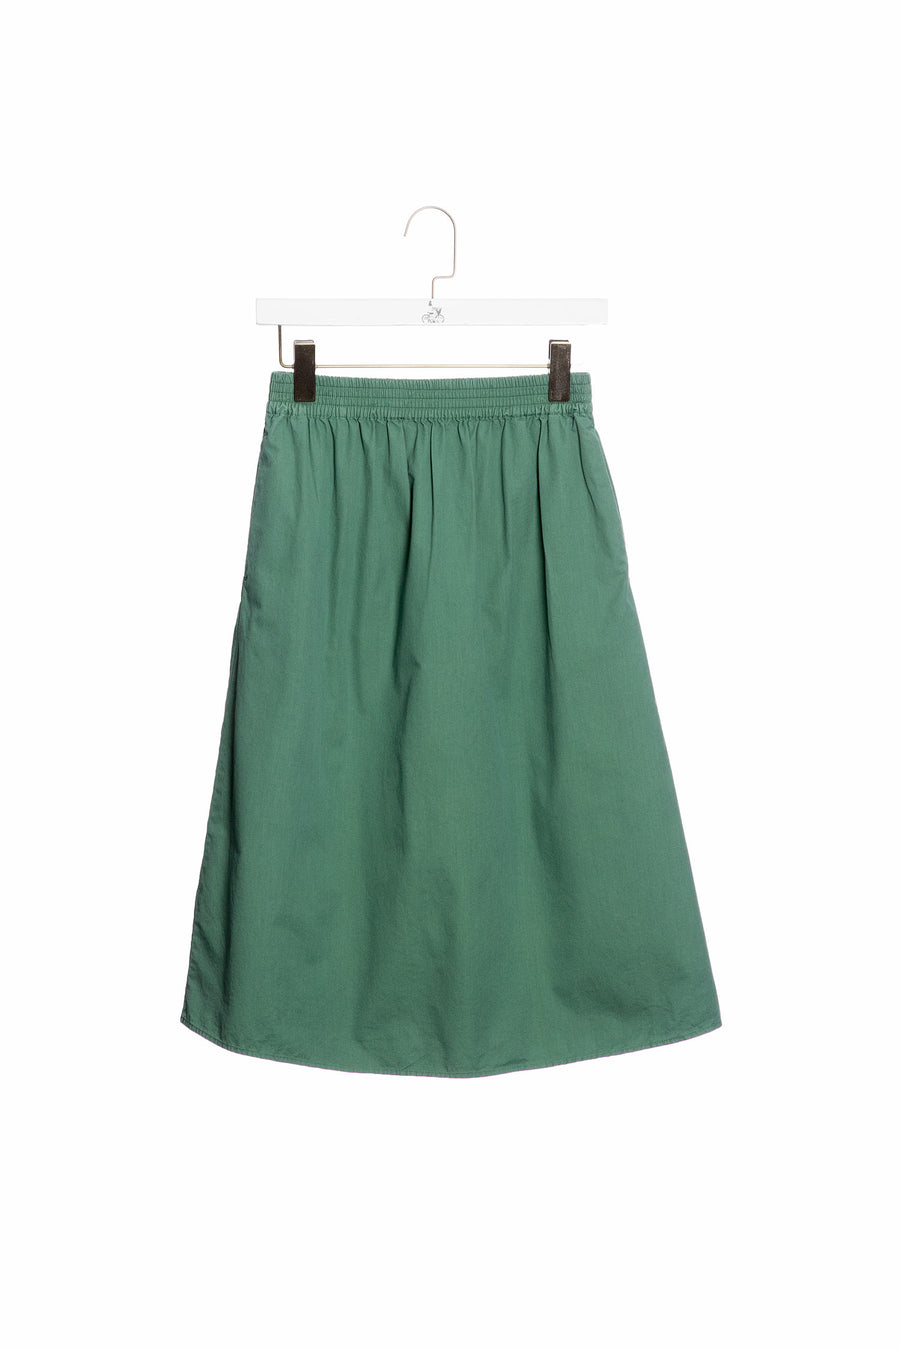 Cotton Skirt With Elastic Waistband 60-Jade